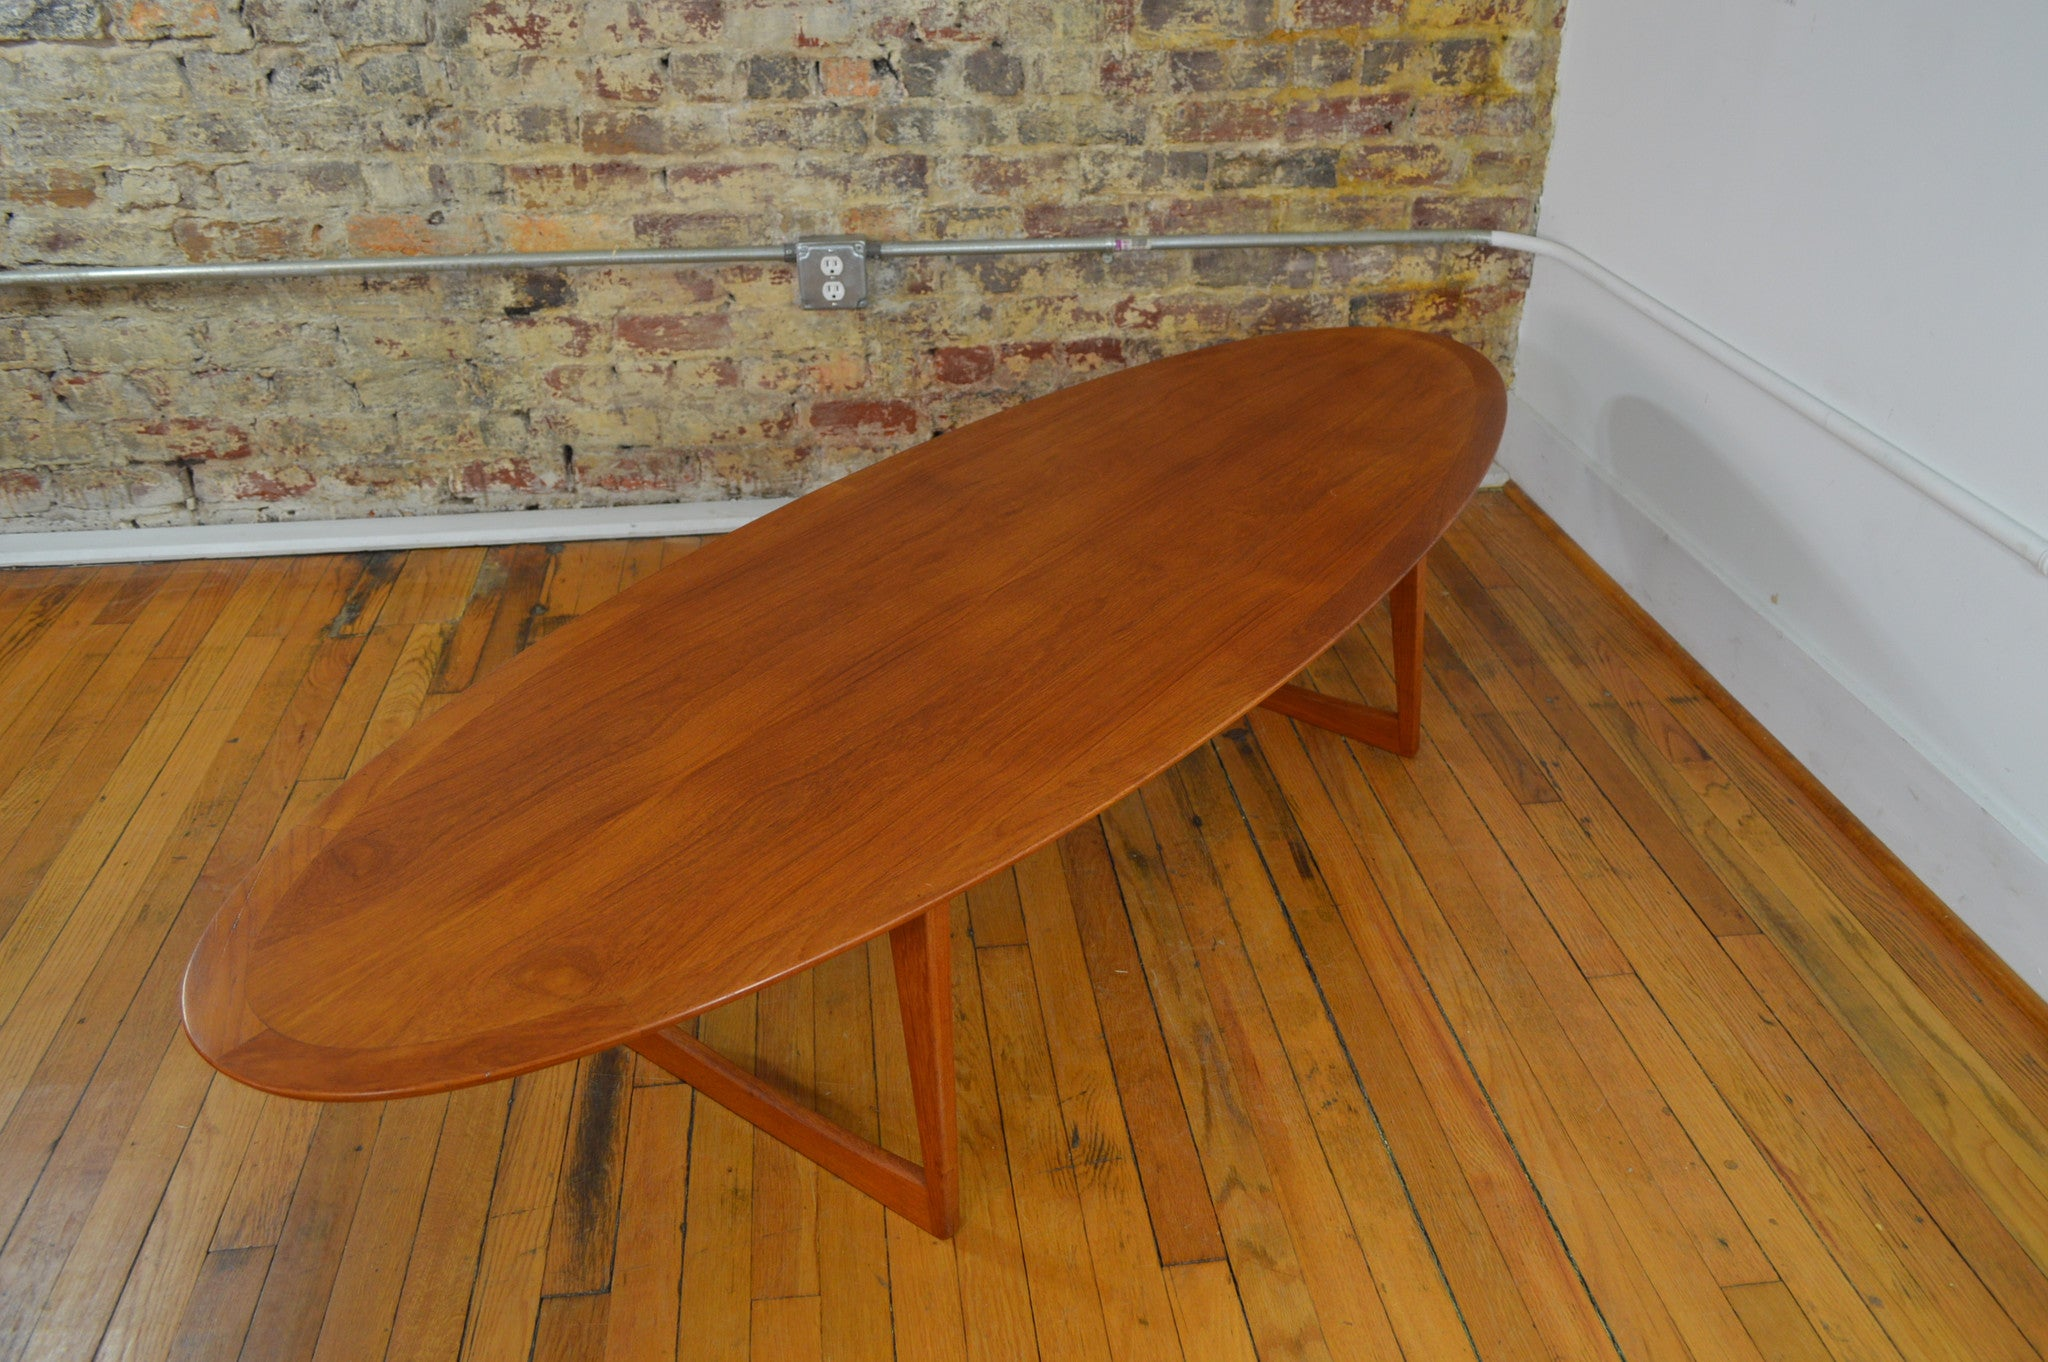 M M Moreddi Danish Teak Surfboard Coffee Table GalaxieModern